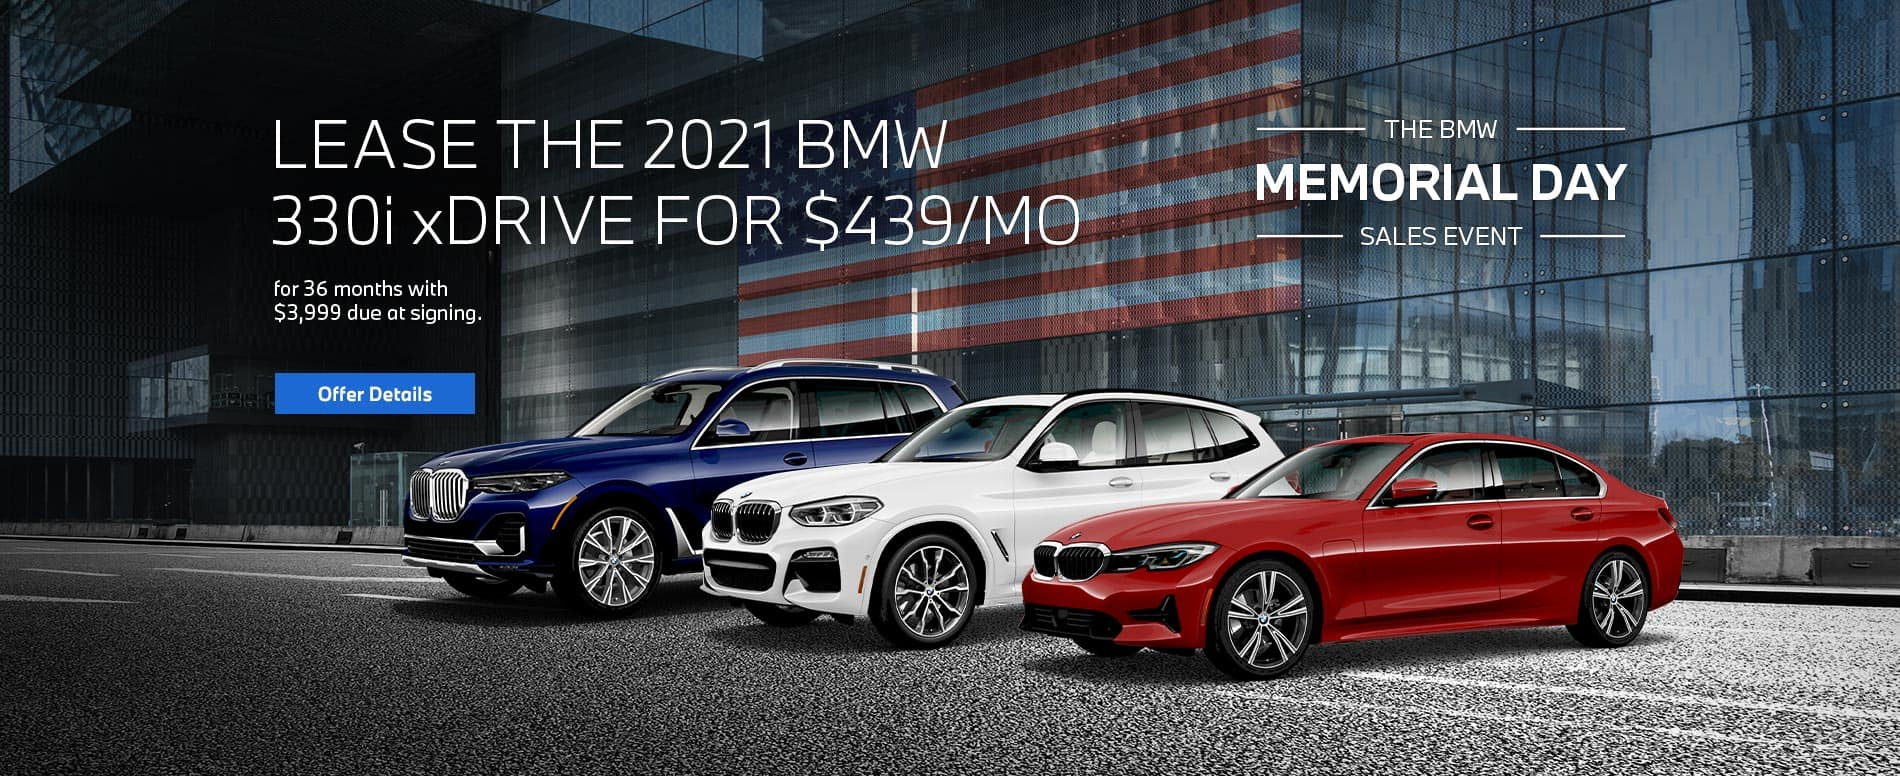 BMW-Manhattan_MemorialDay-Slide_1900x776_5-21_FINAL